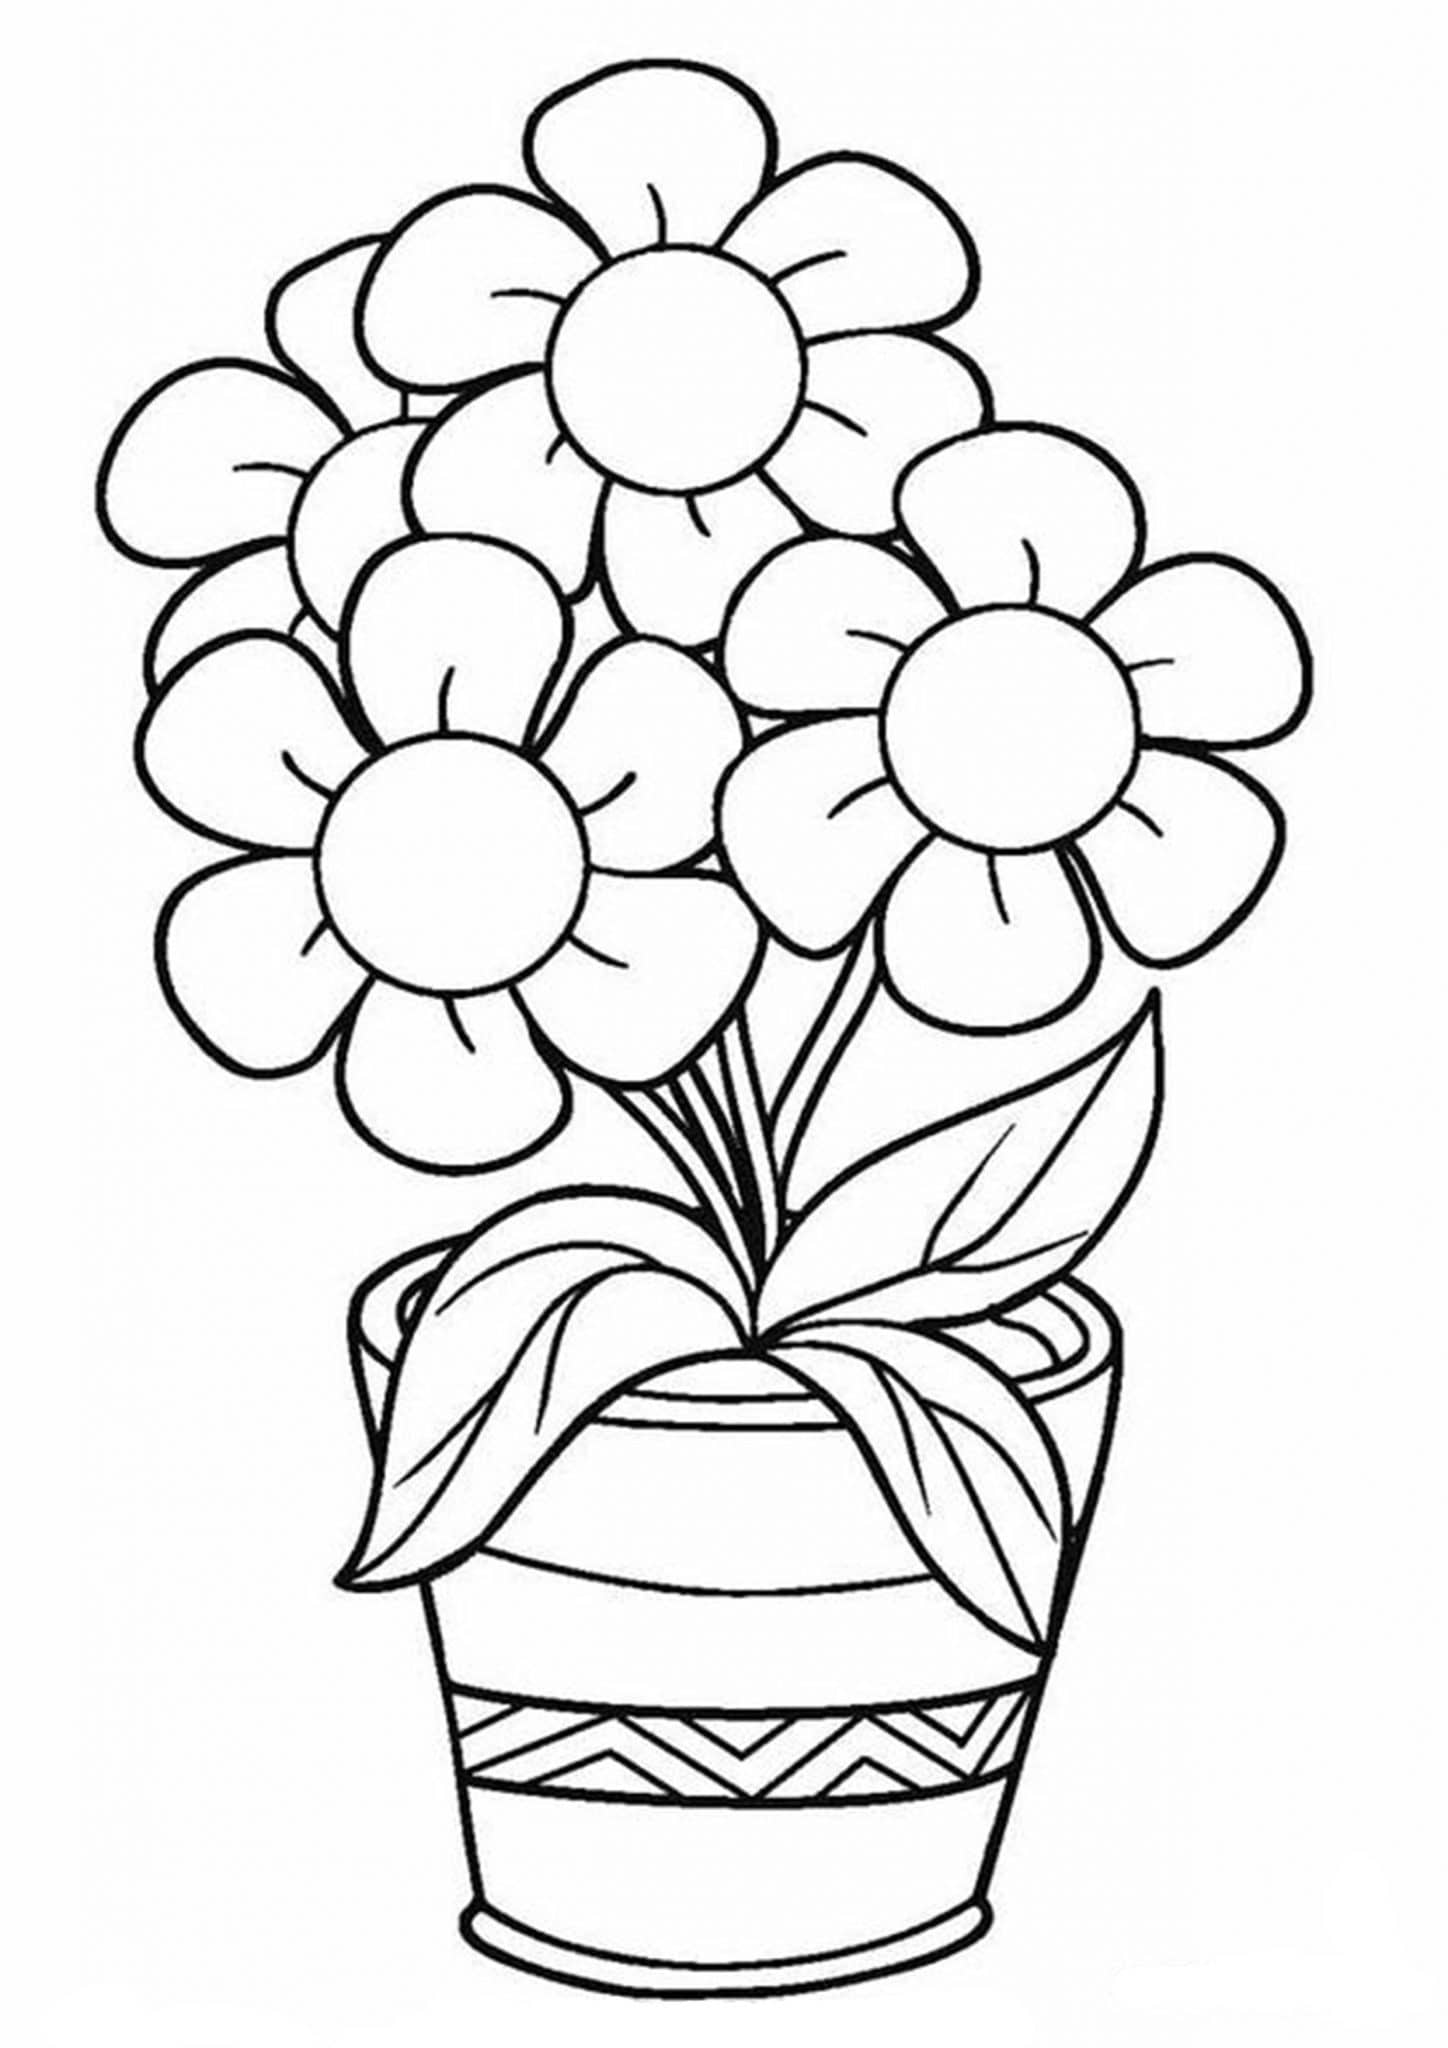 flowers to color beautiful tulip flower coloring page kids play color color flowers to